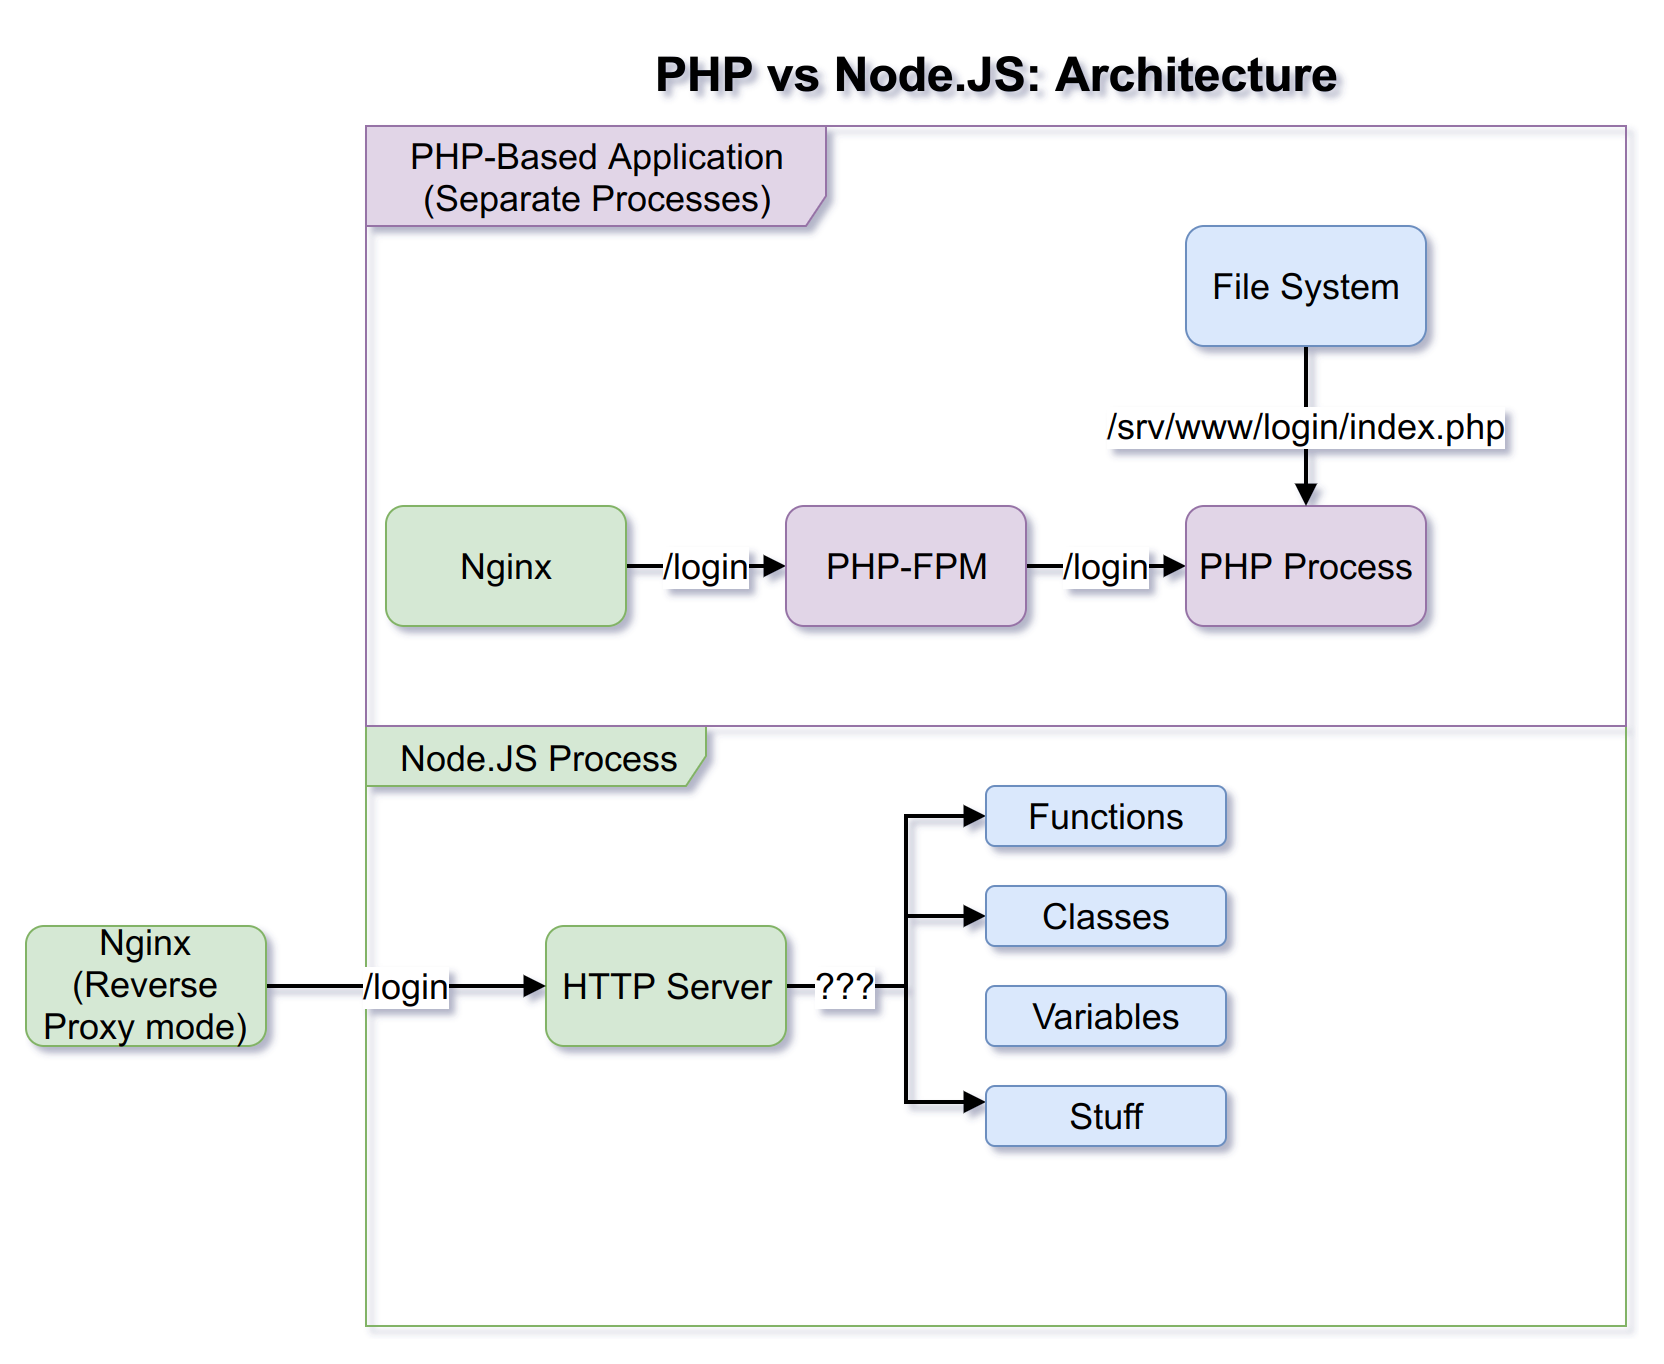 A comparison of the way PHP and Node.JS applications are structured. See the explanation below.